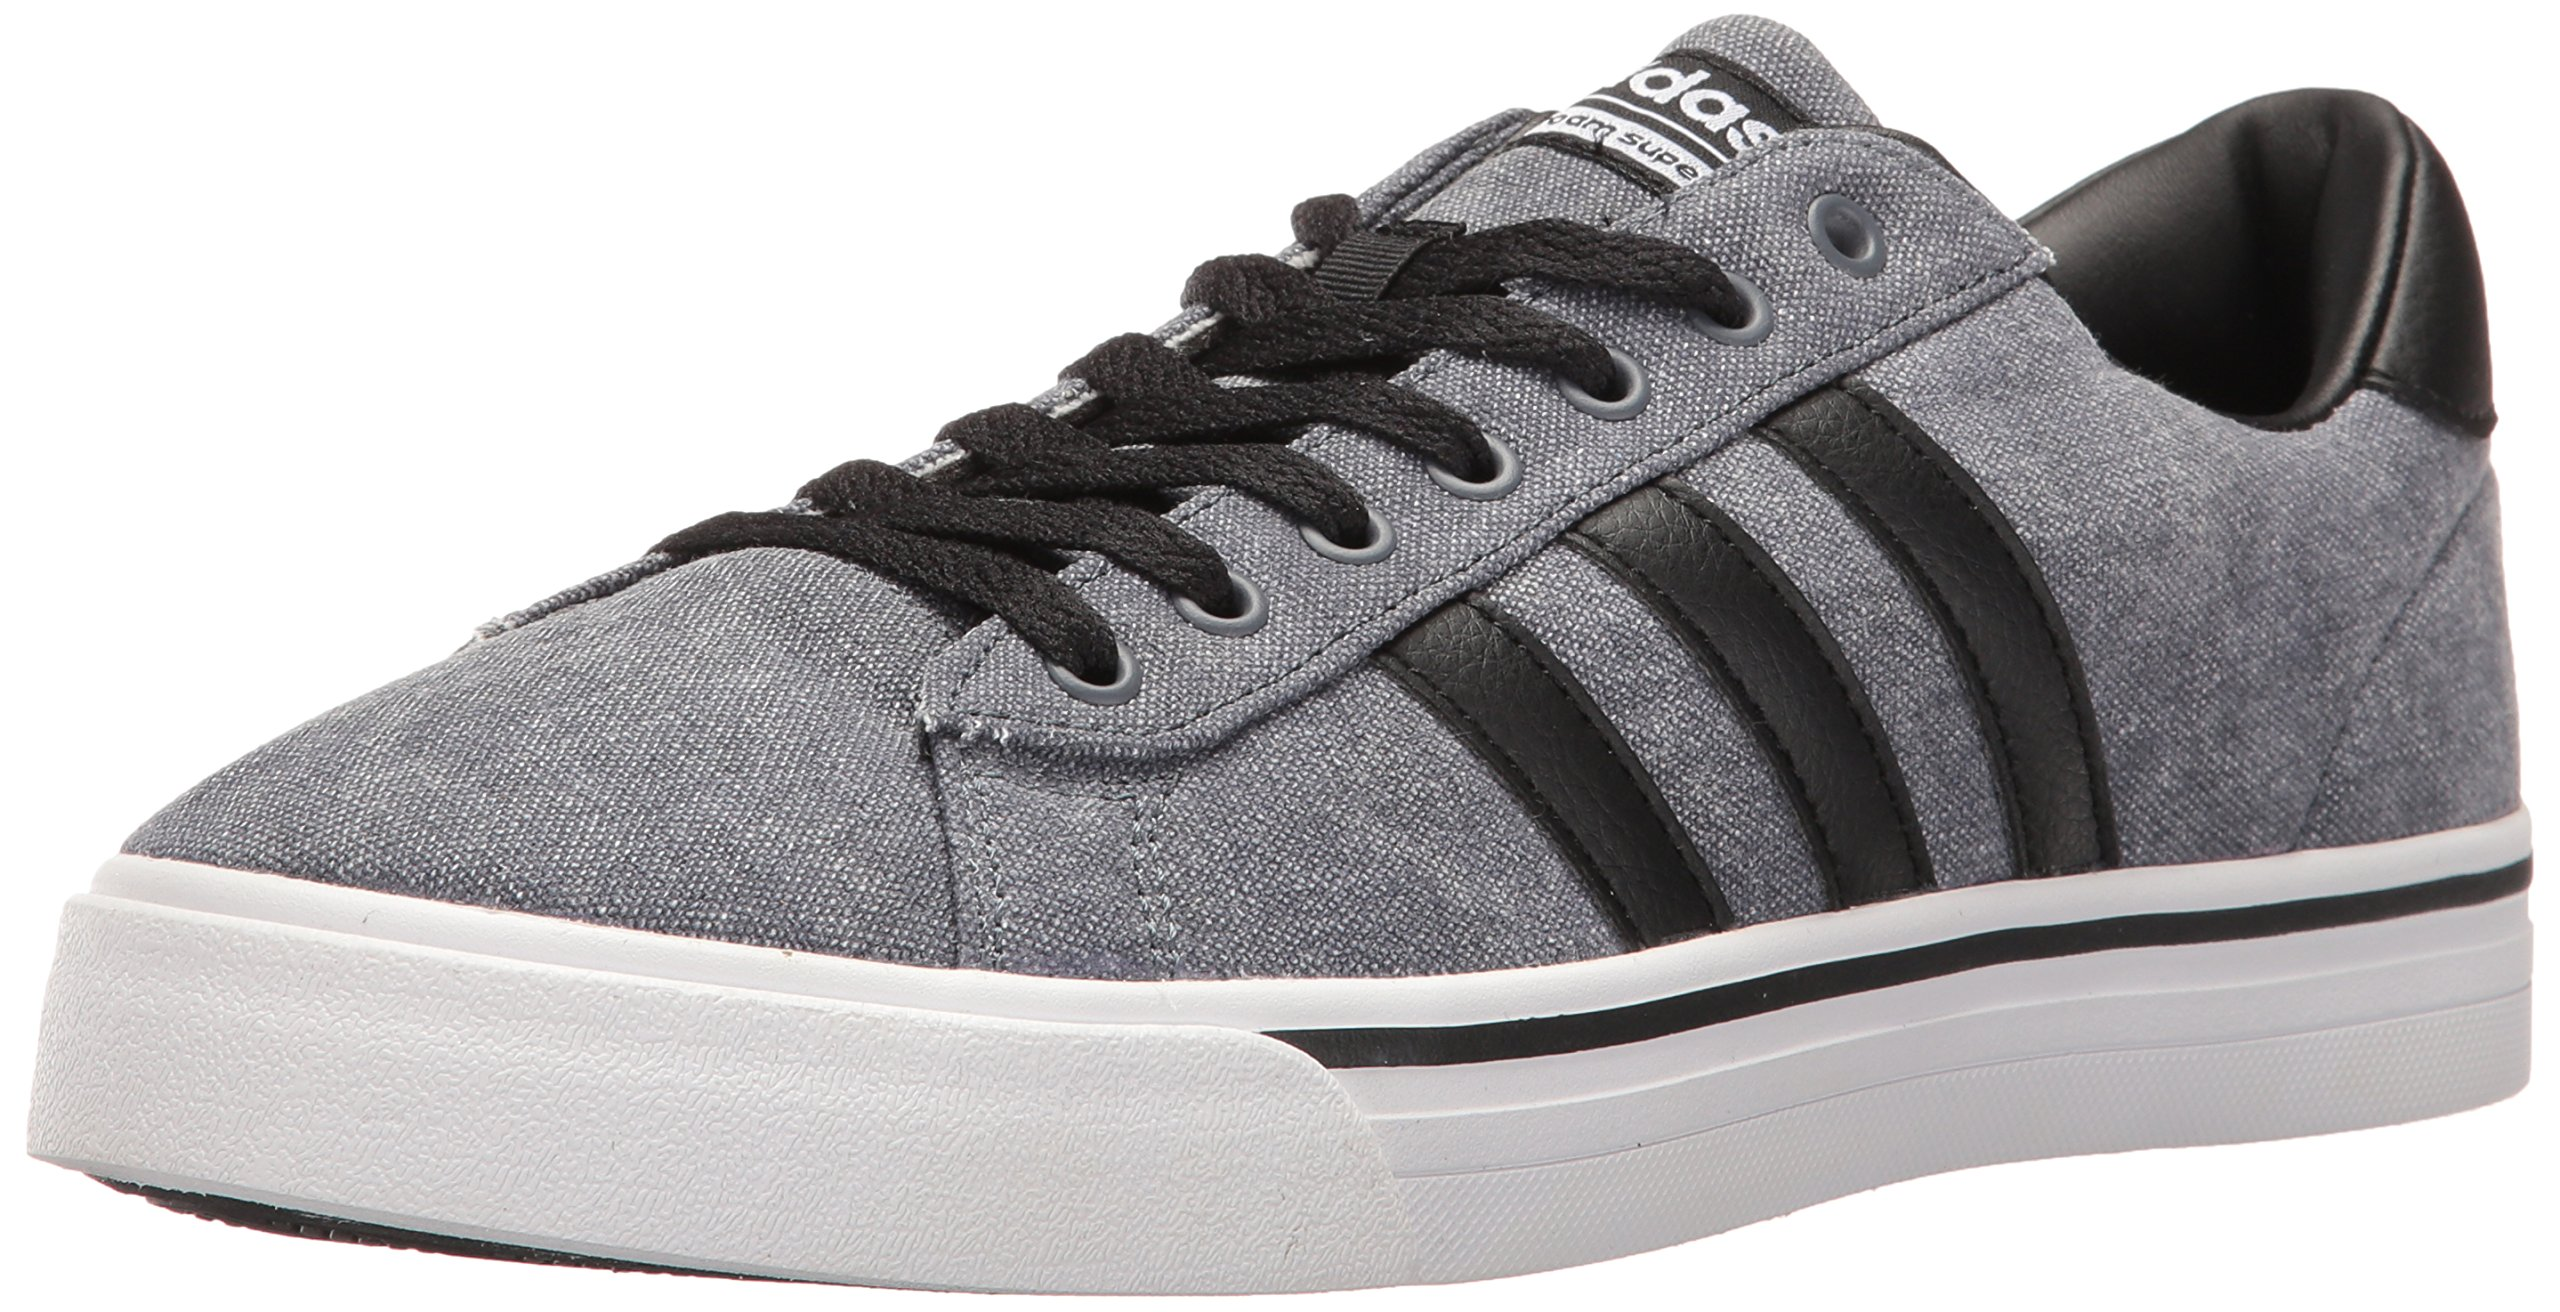 adidas Men's Cloudfoam Super Daily Sneakers, Black/Grey/White, (10 M US) by adidas